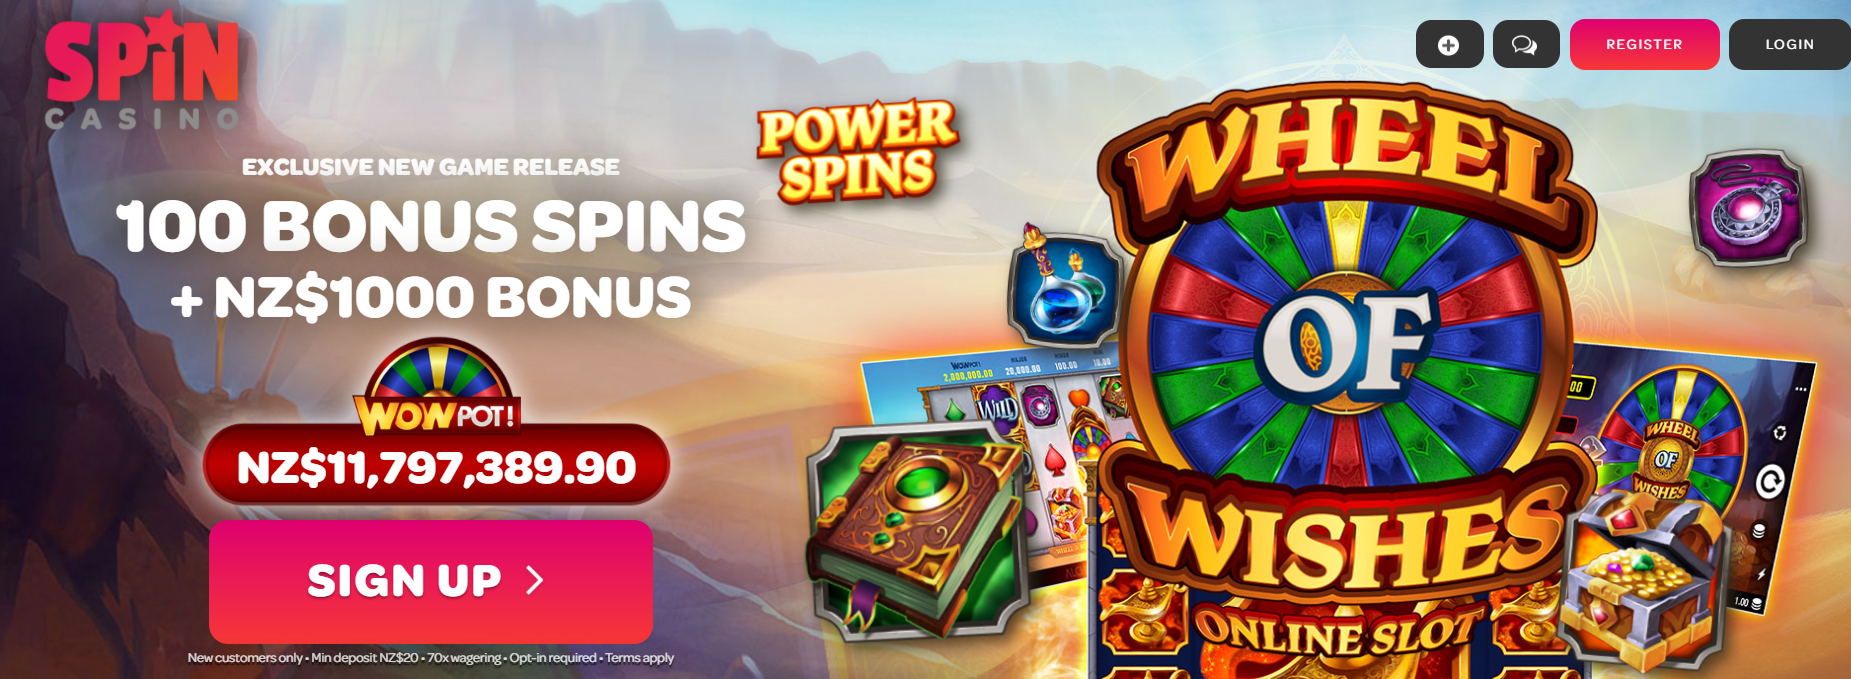 spin casino NZ for real money